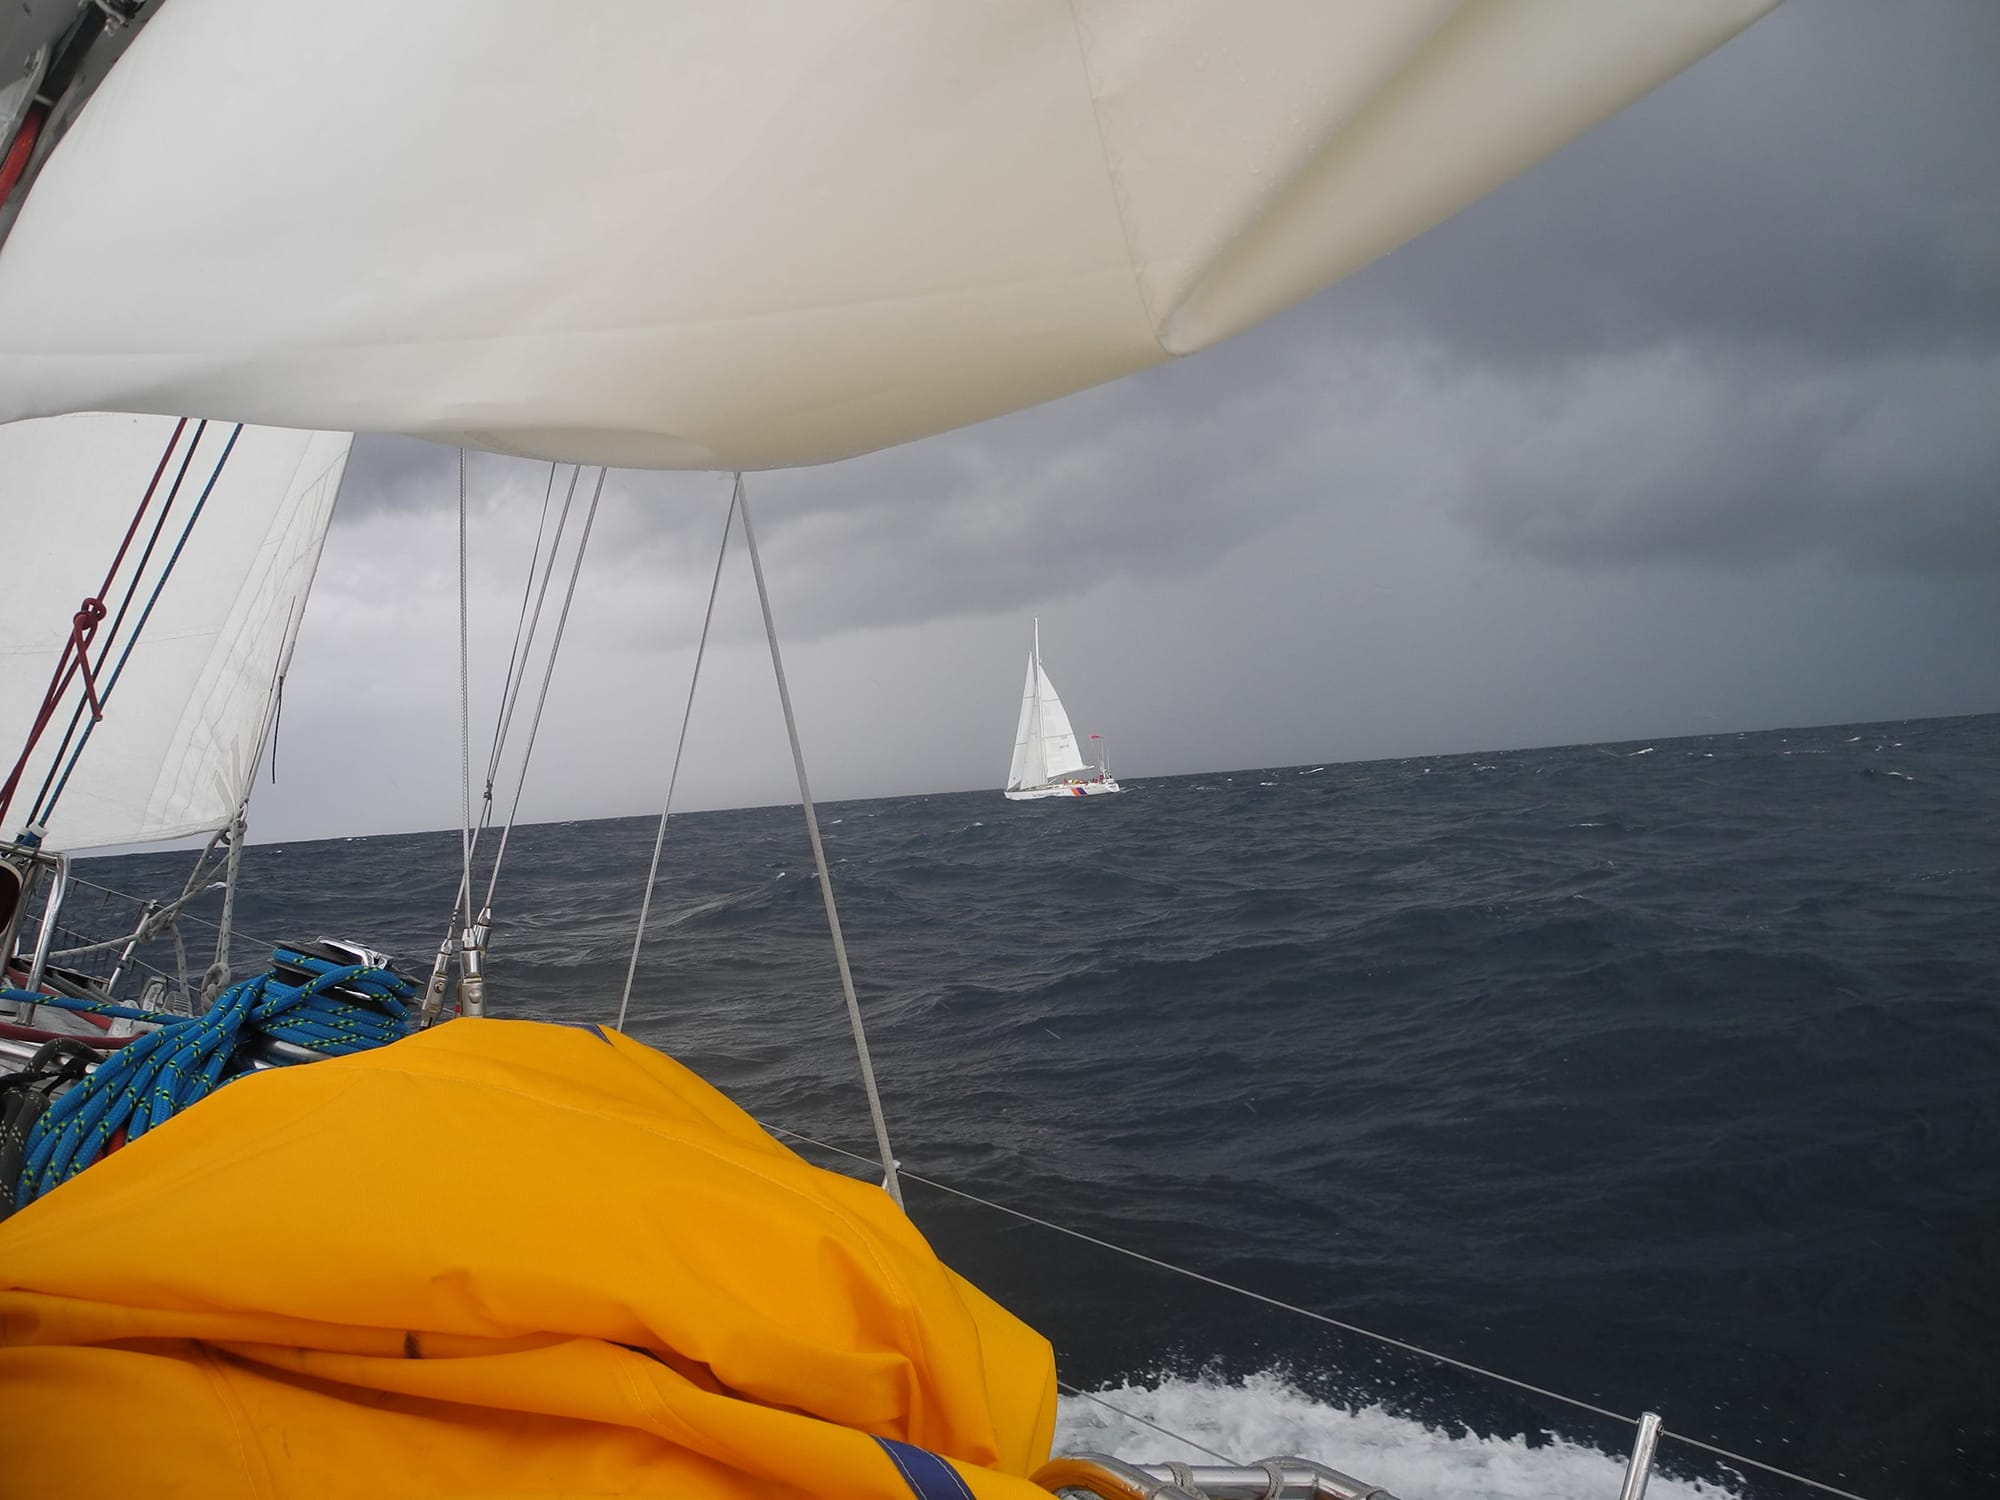 Biscay sailing